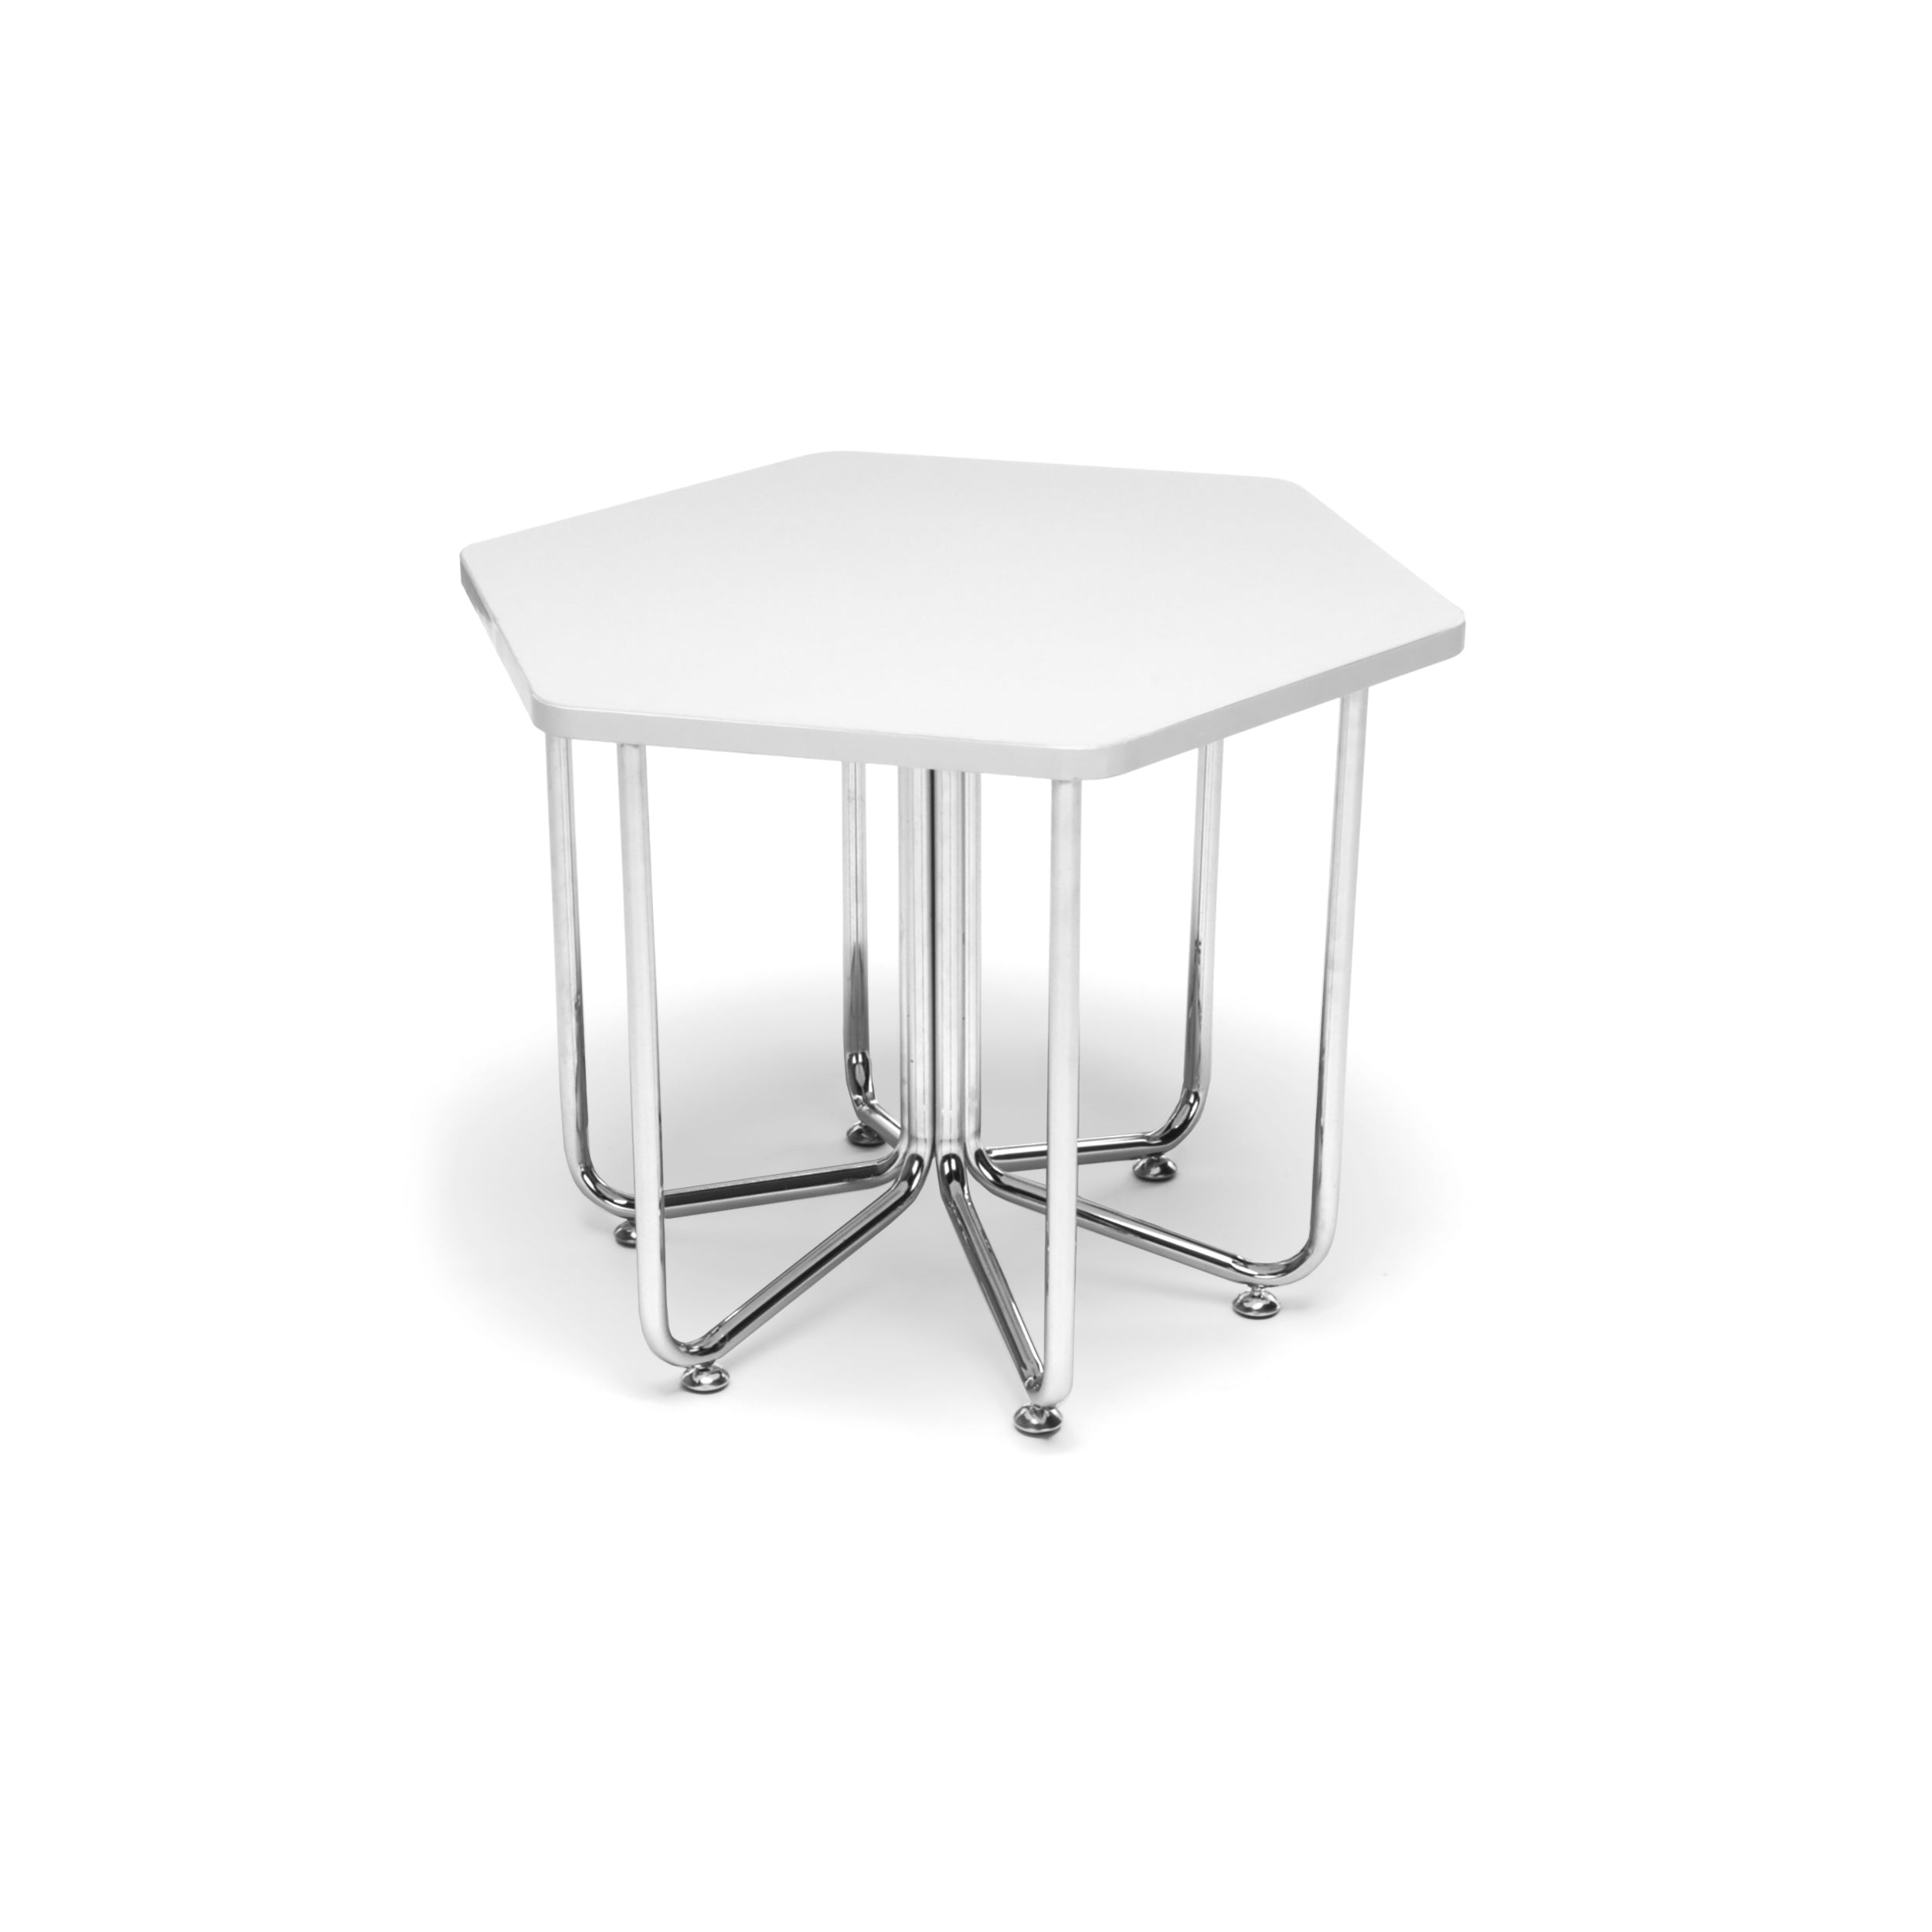 Ofminc Model 66T Hex Series Table